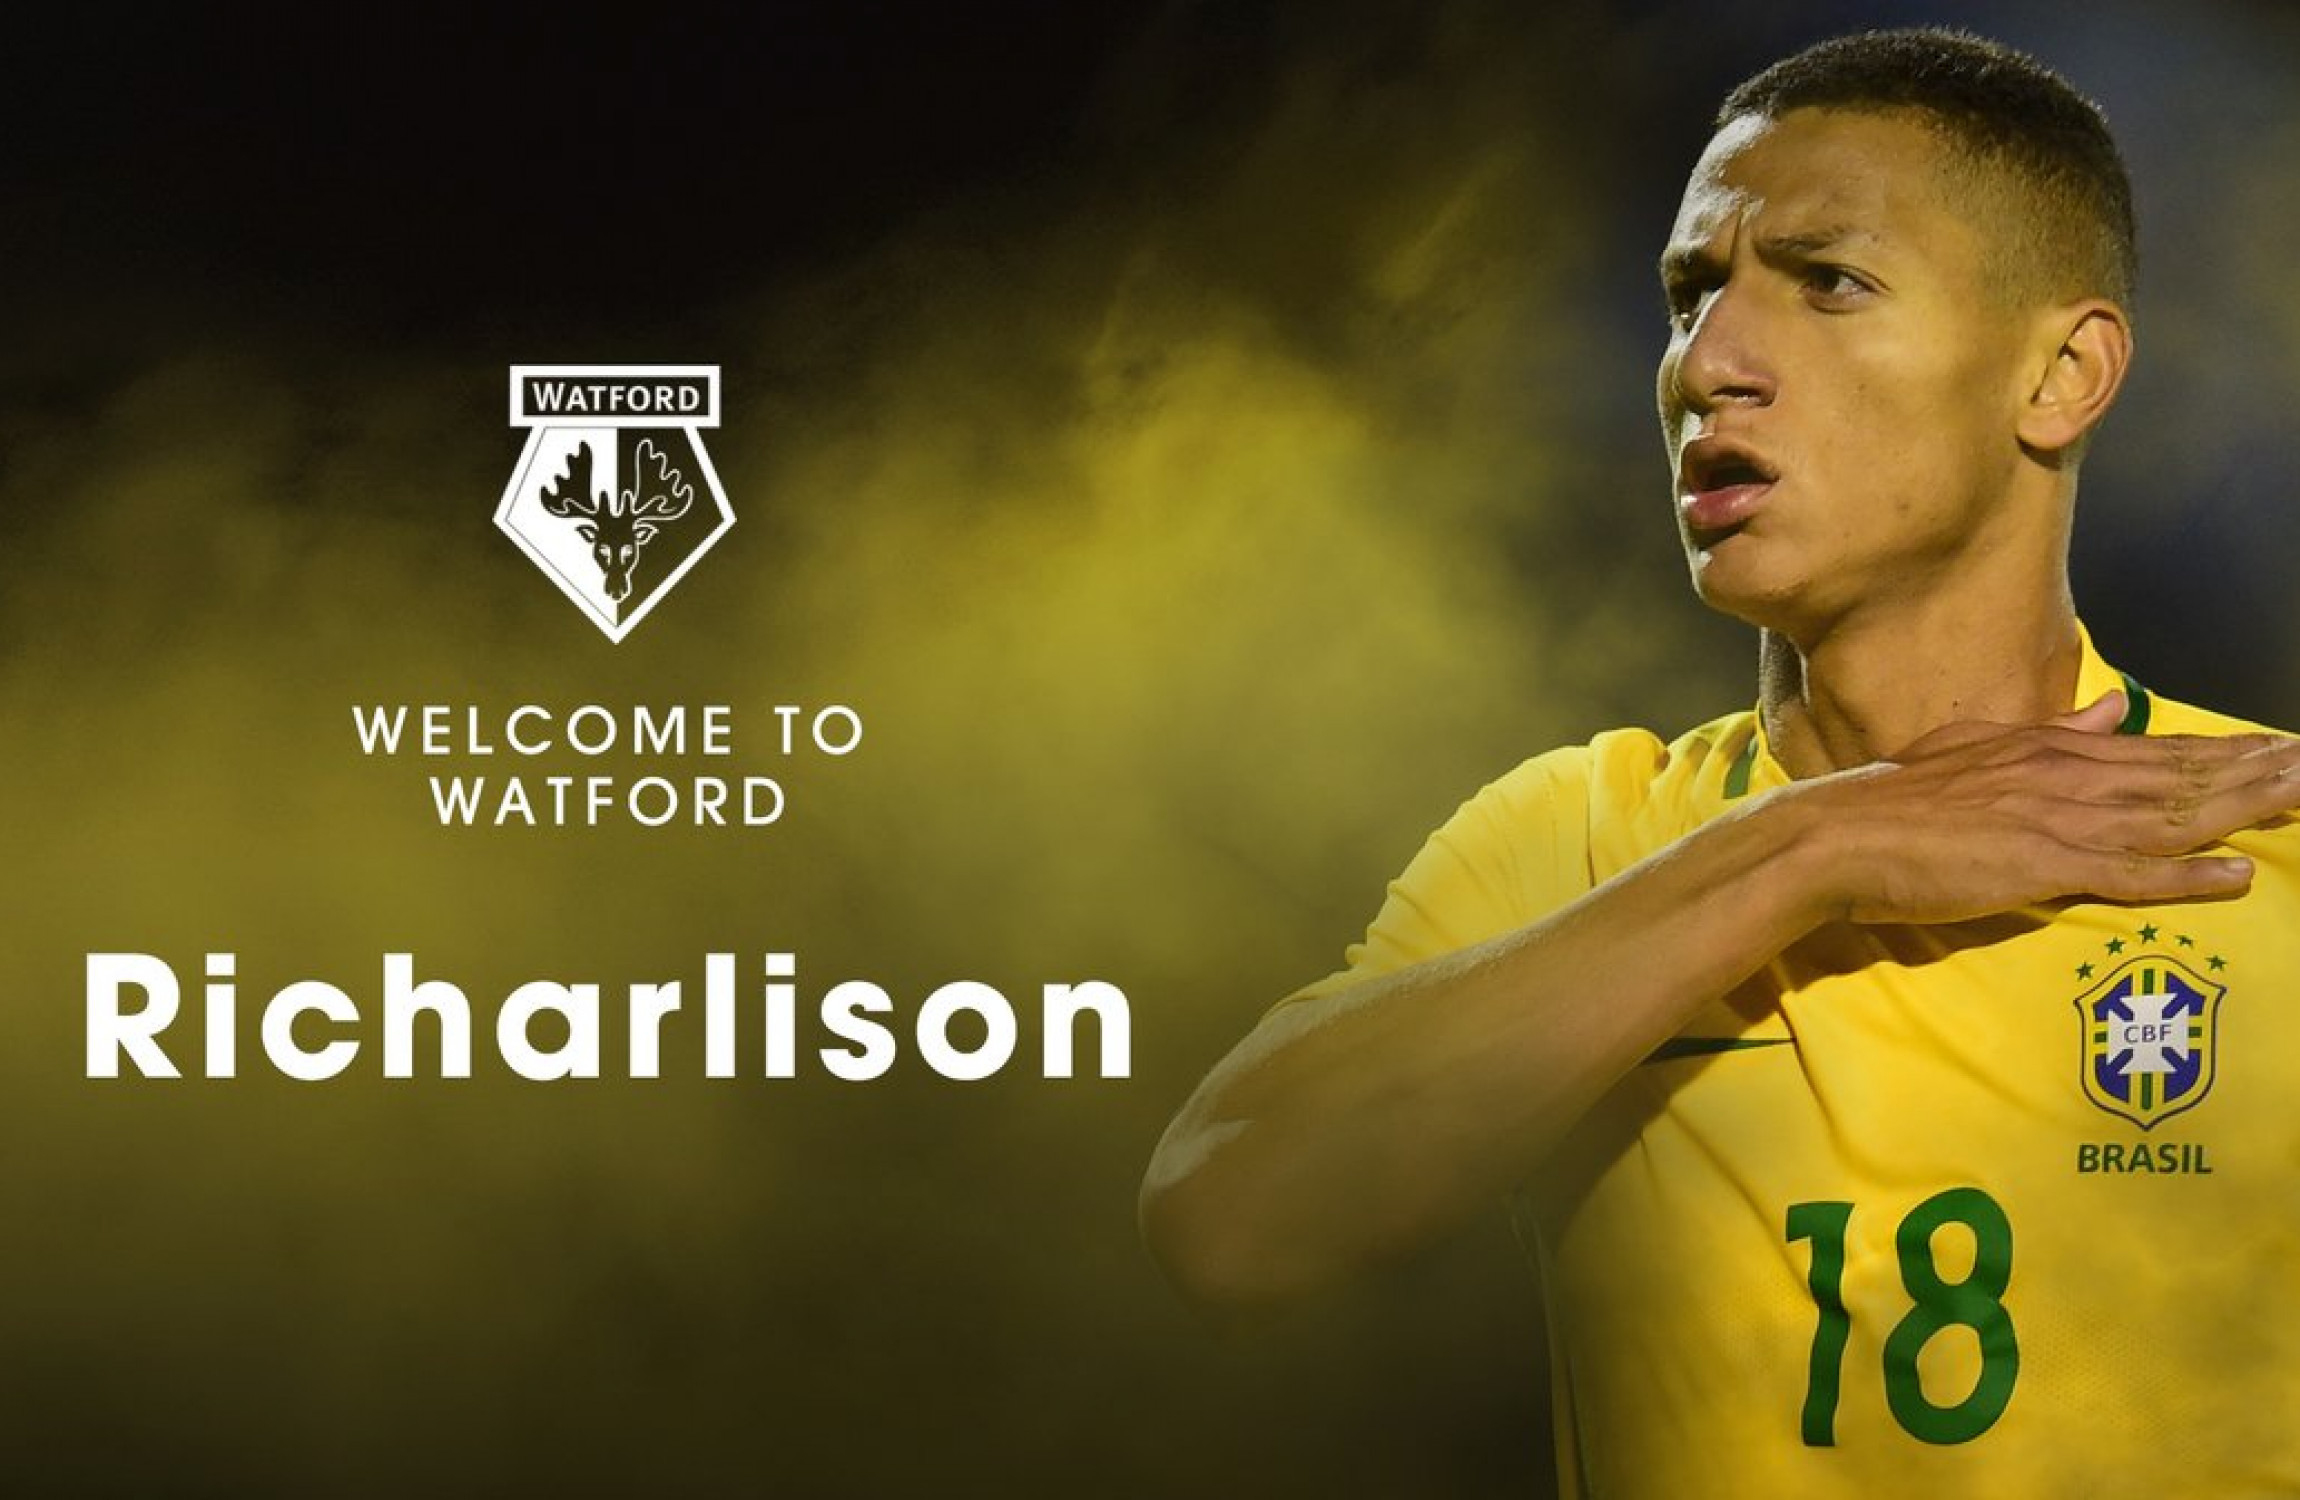 Watford sign Brazil U20 star Richarlison from Fluminense